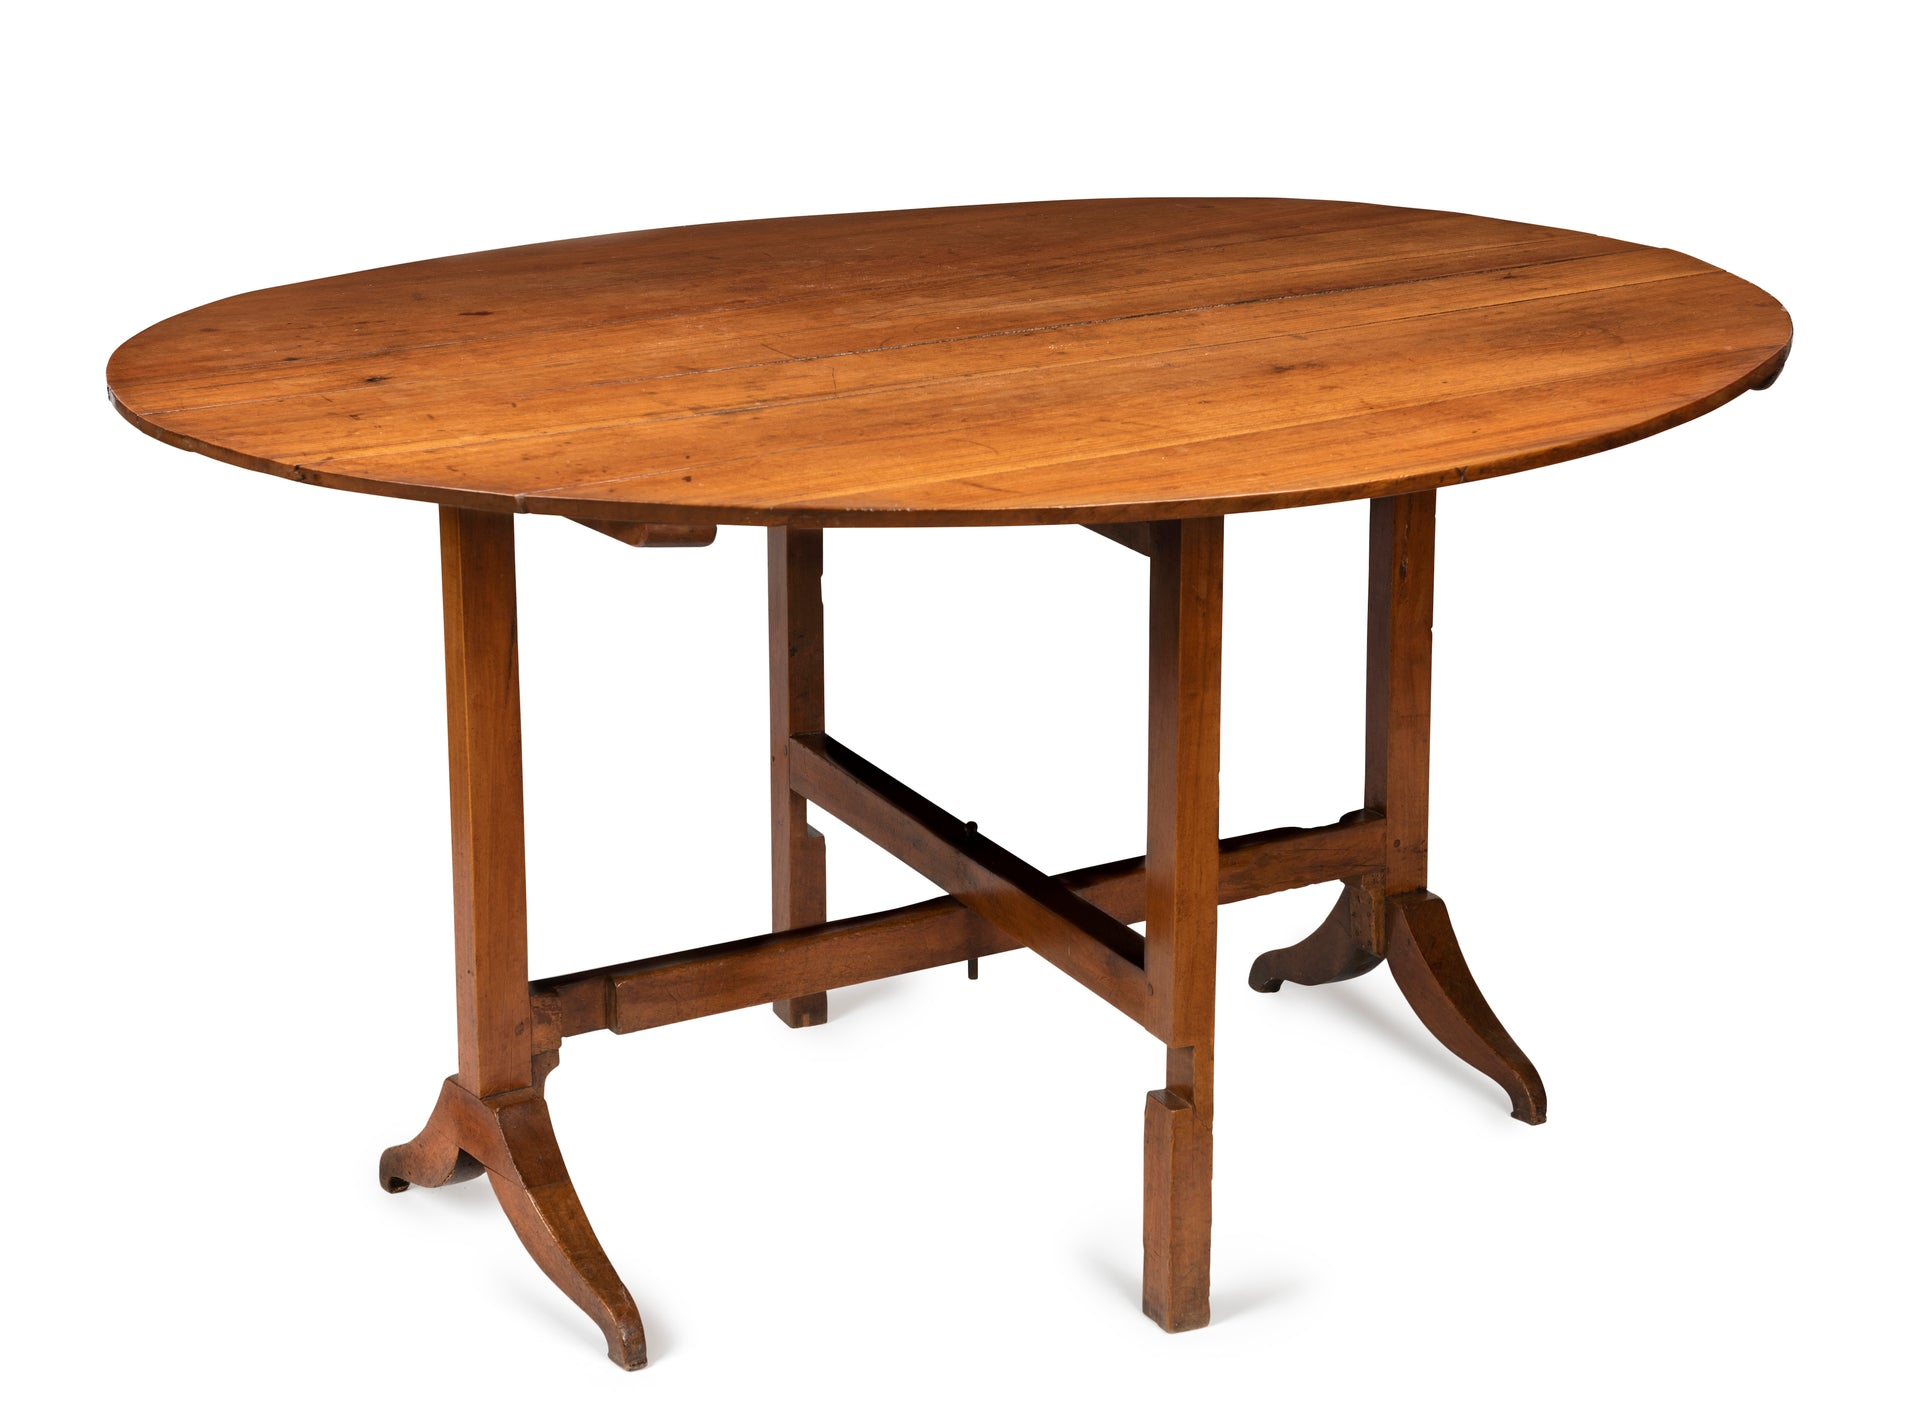 A Provincial oval fruitwood Vignerons table, French late 18th, early 19th Century